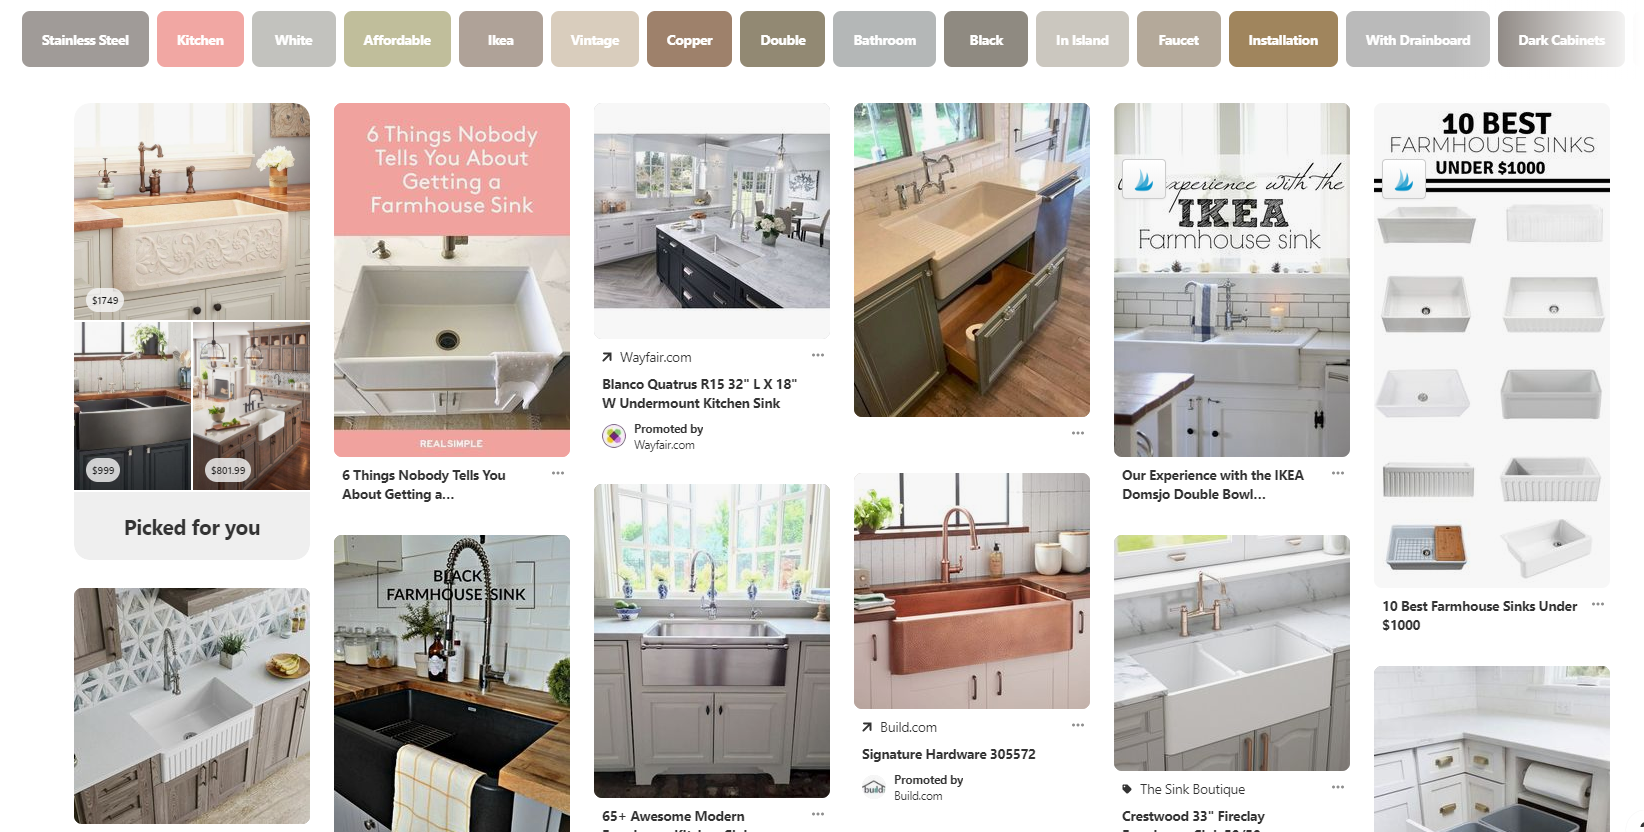 Farmhouse Sinks on Pinterest